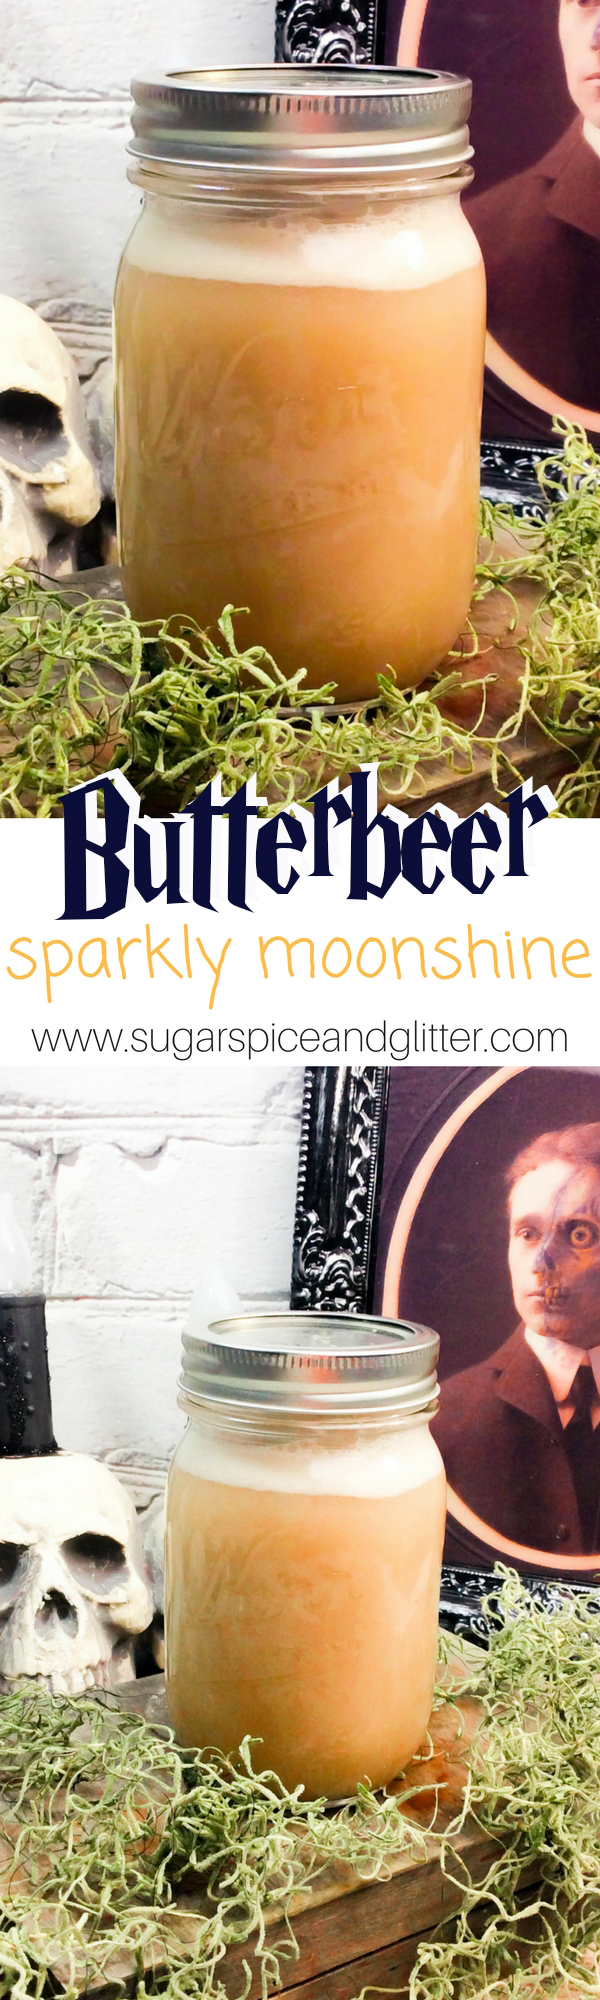 How to make Sparkly Moonshine at home. A DIY Alcoholic Butterbeer recipe that makes the perfect gift for a Harry Potter fan